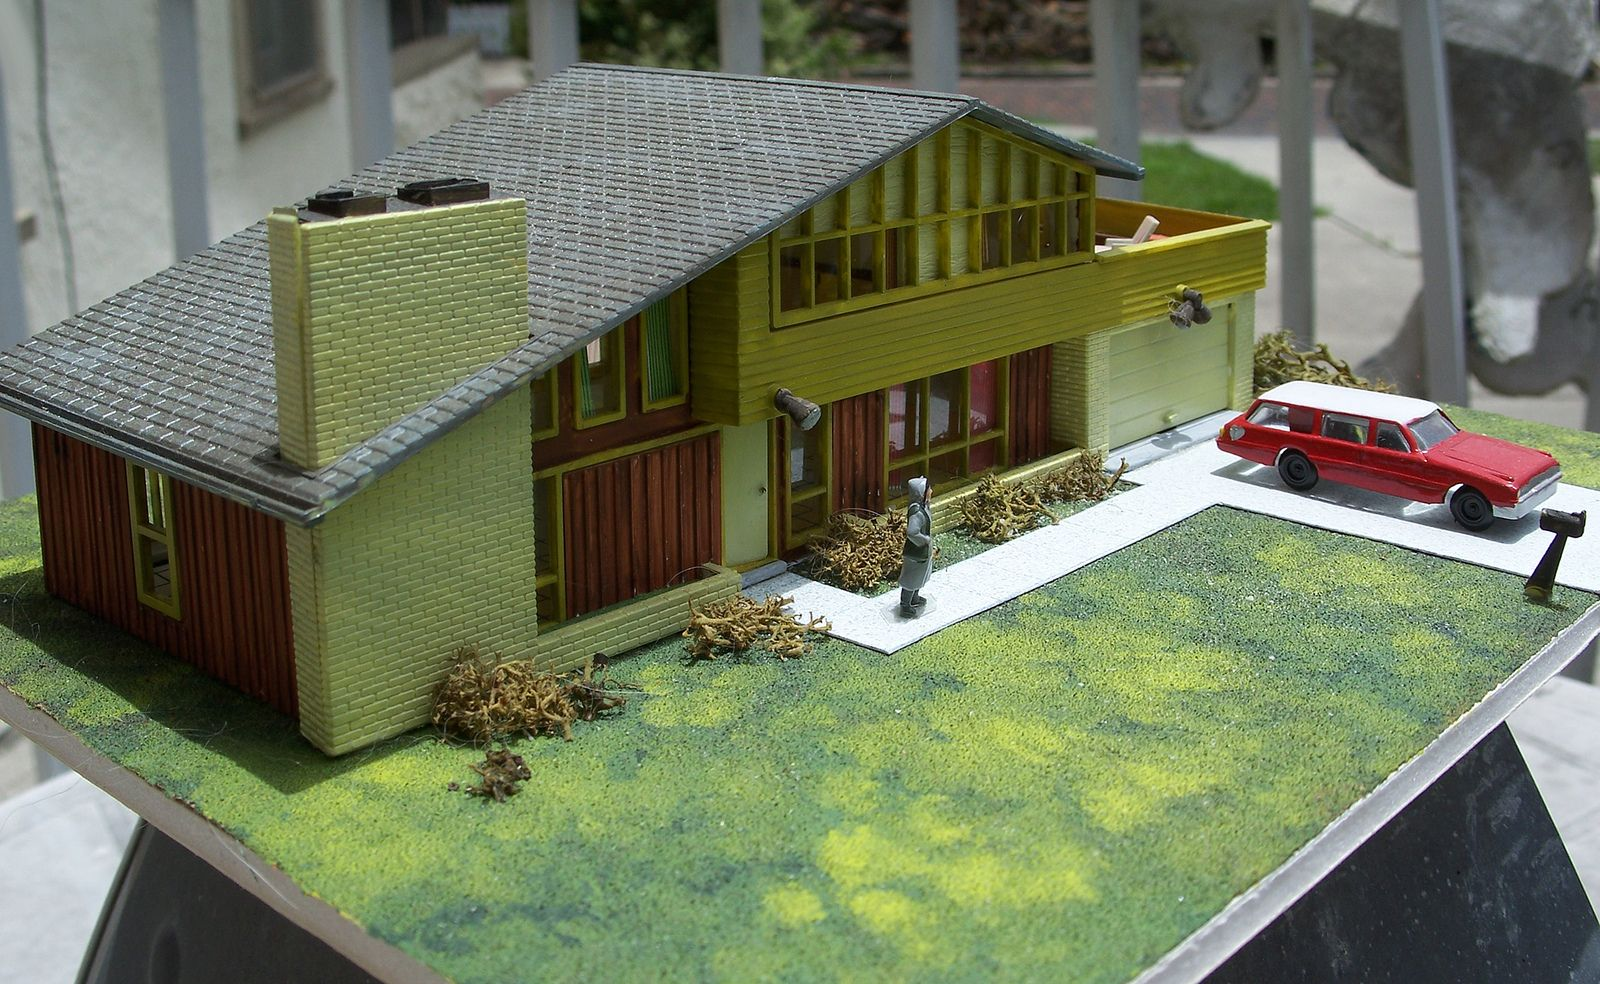 Small model houses Ho scale Models and House kits